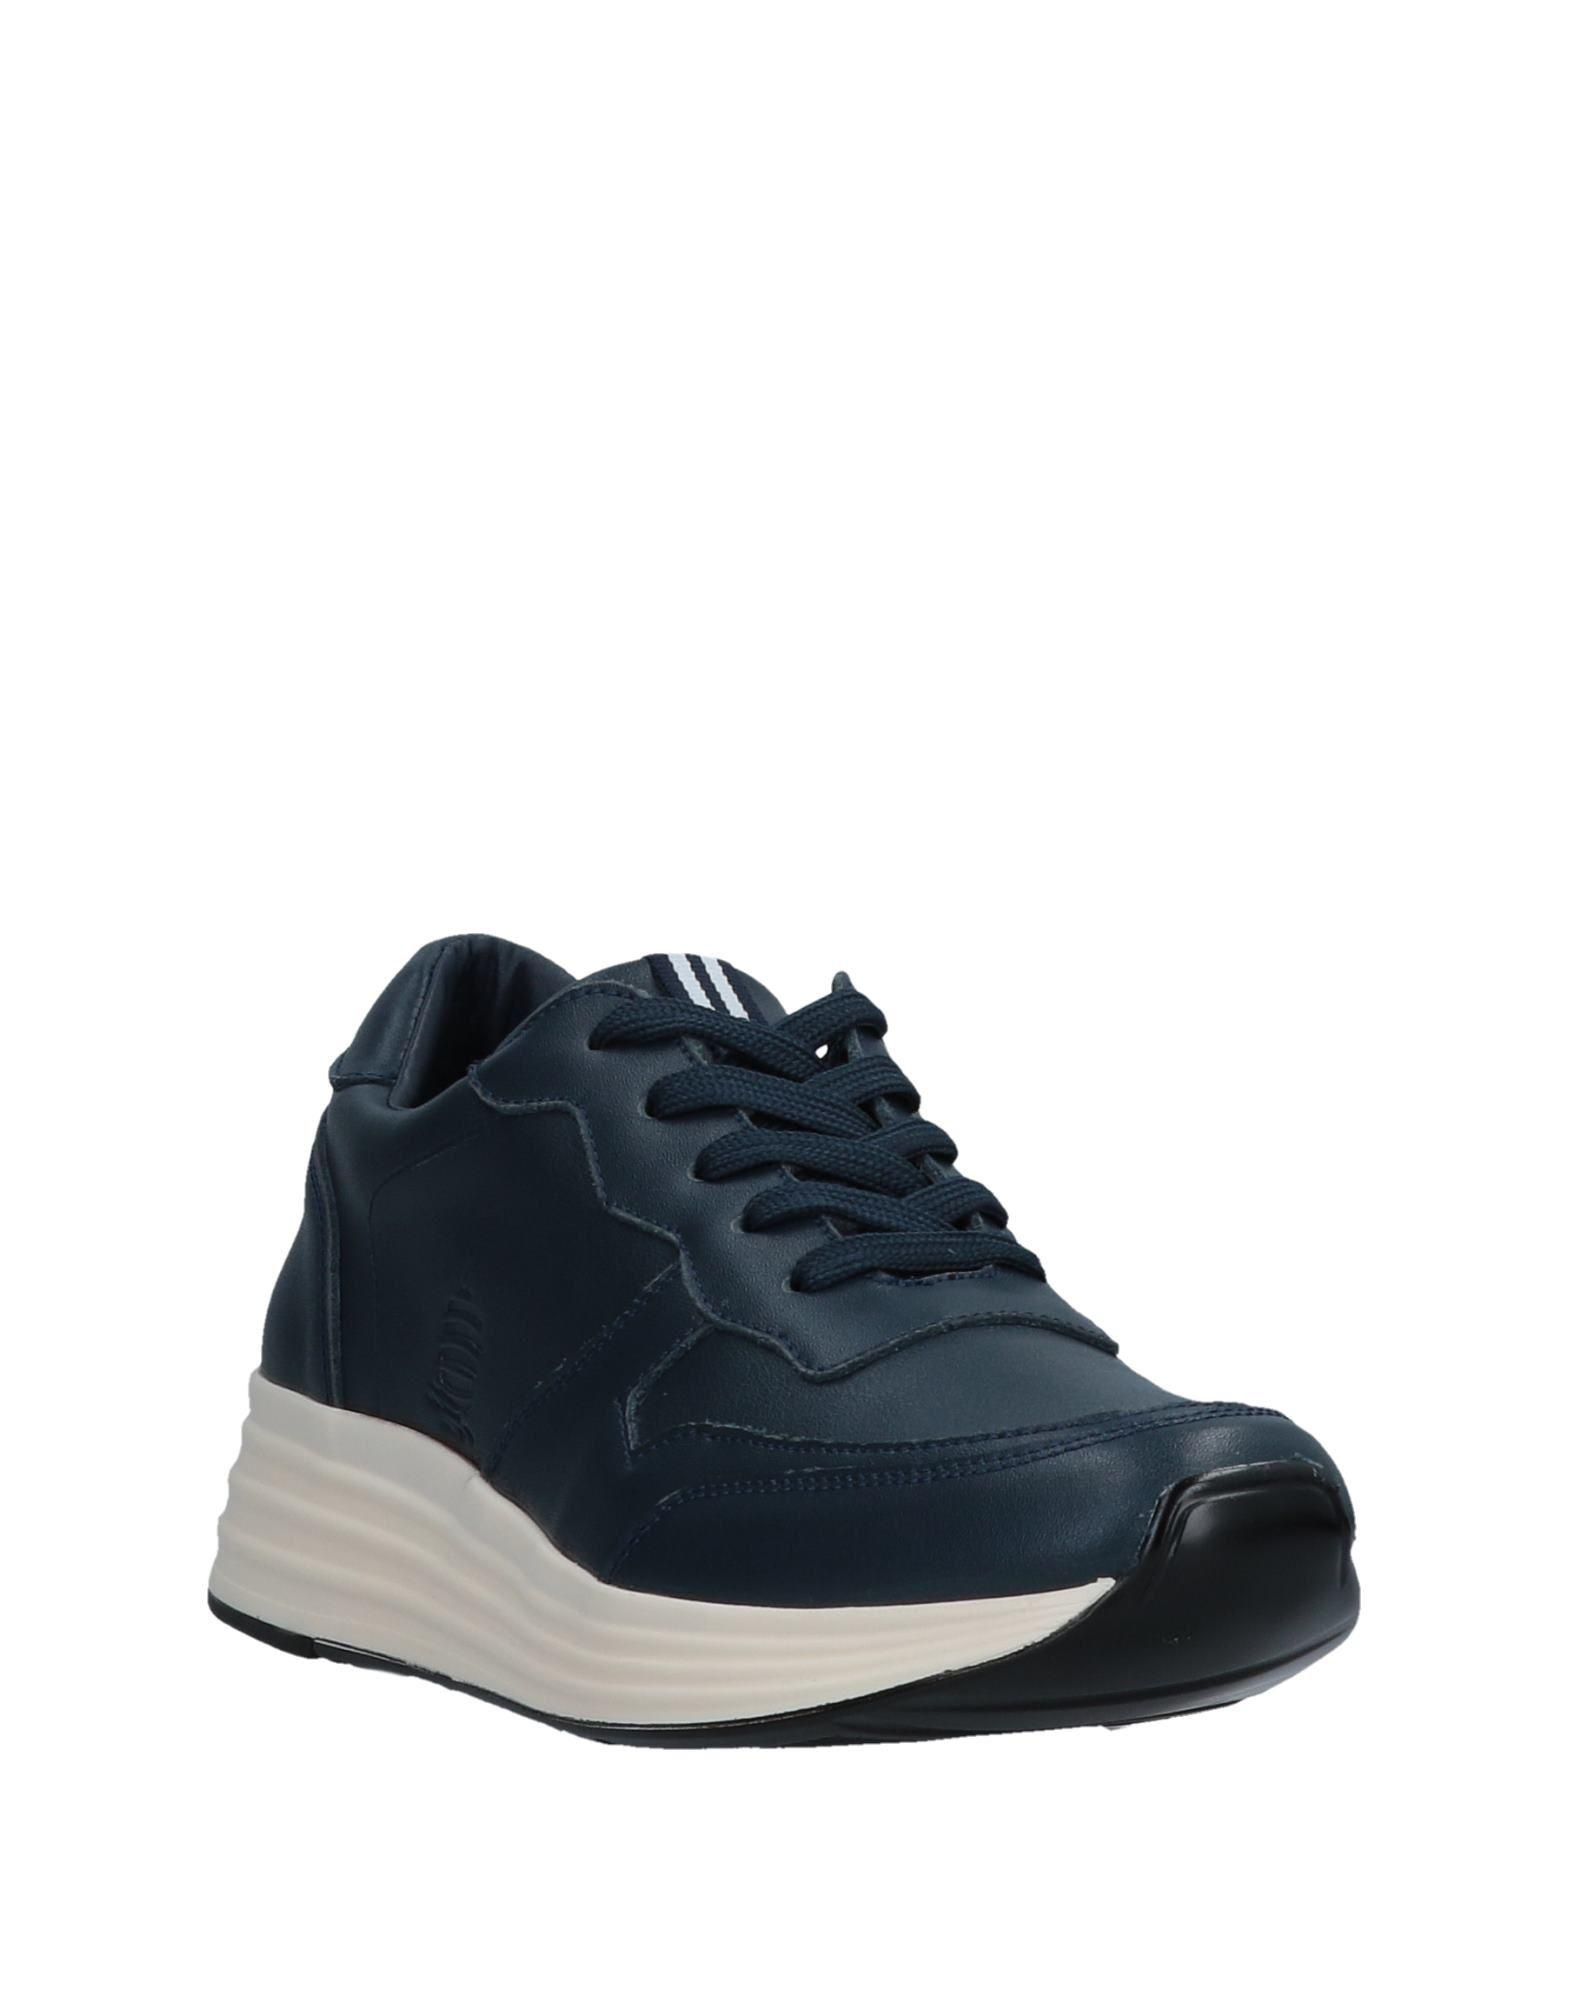 Marina Yachting Rubber Low-tops & Sneakers in Dark Blue (Blue)